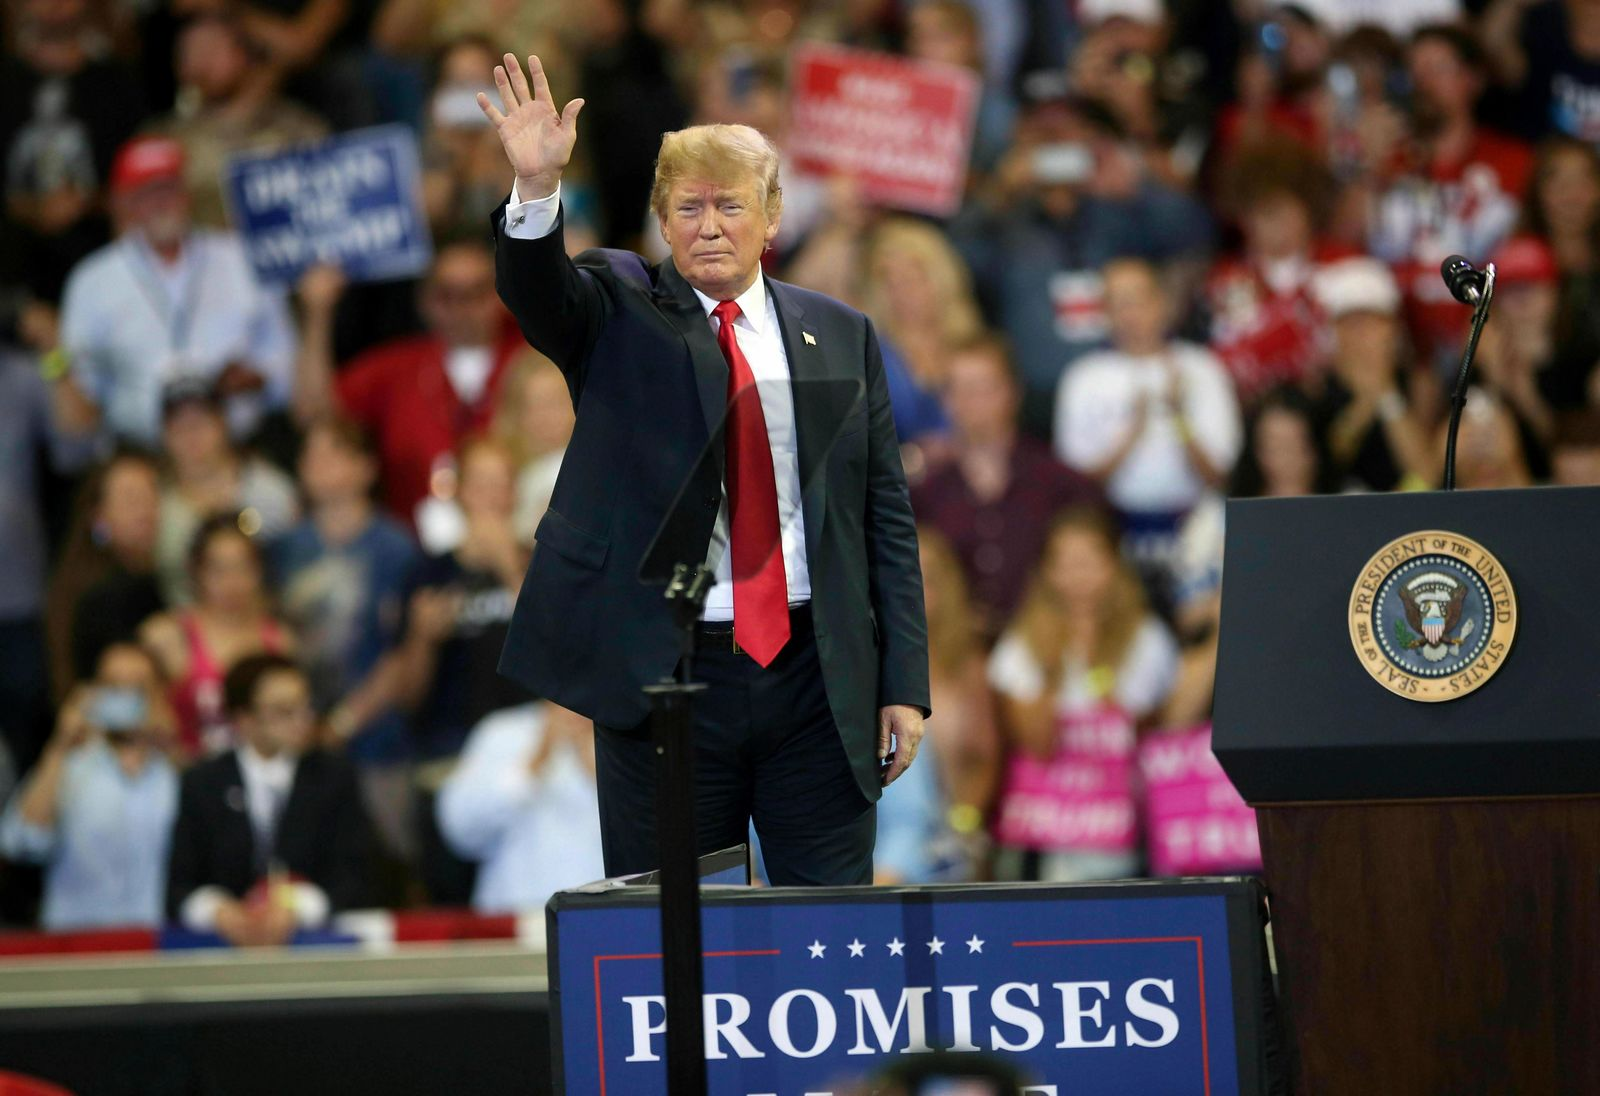 FILE - In this June 20, 2018 file photo, U.S. President Donald Trump waves to the crowd after speaking at a campaign rally, Wednesday, June 20, 2018, in Duluth, Minn. Trump heads back to Minnesota on the nation's tax filing deadline, Monday, April 15, 2019, eager to remind voters in a state he nearly carried in 2016 about the $1.5 trillion Republican tax cut. It's a policy achievement that won't resonate with everyone in Minnesota, where the loss of the state tax deduction hurt some taxpayers. And national polls show most Americans don't have a clear idea what the tax cuts did for them. (AP Photo/Jim Mone File)